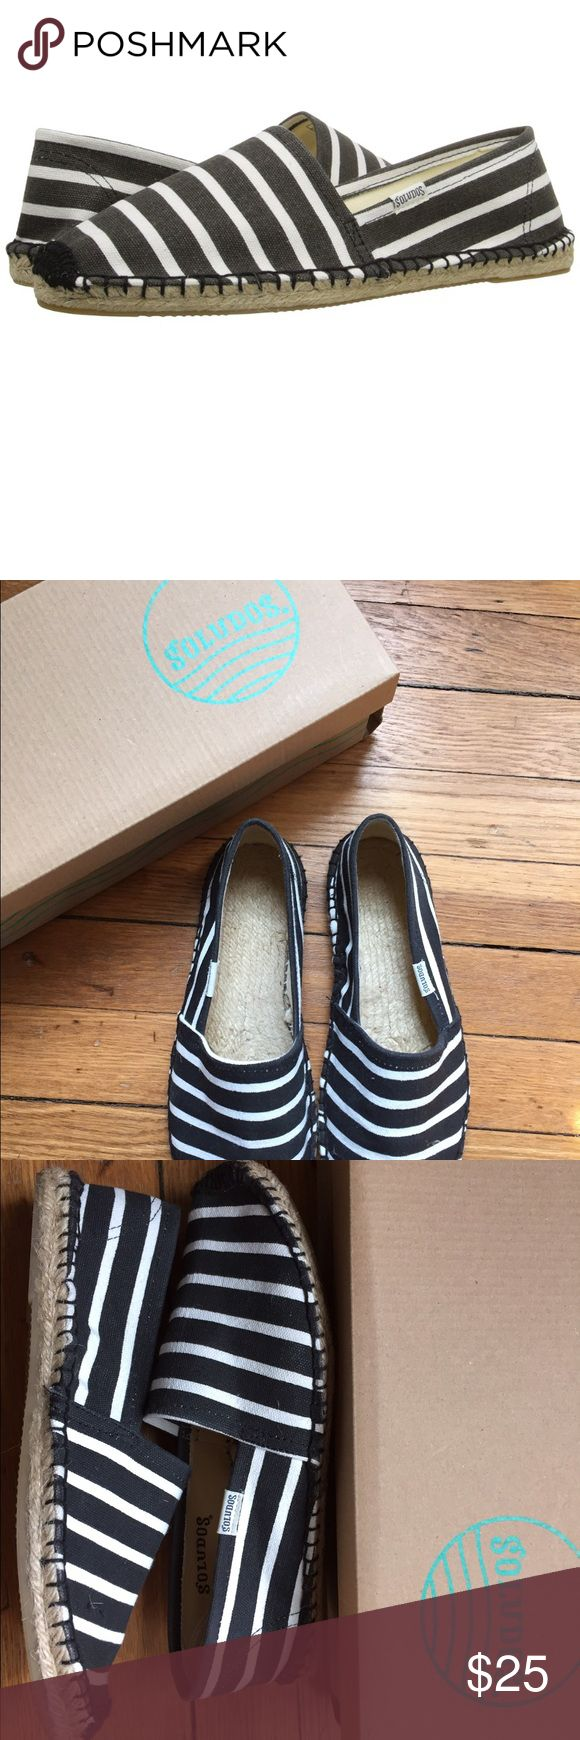 Soludos black and white stripes espadrilles Only worn once black and white stripes espadrilles - perfect for spring and summer! Soludos Shoes Espadrilles